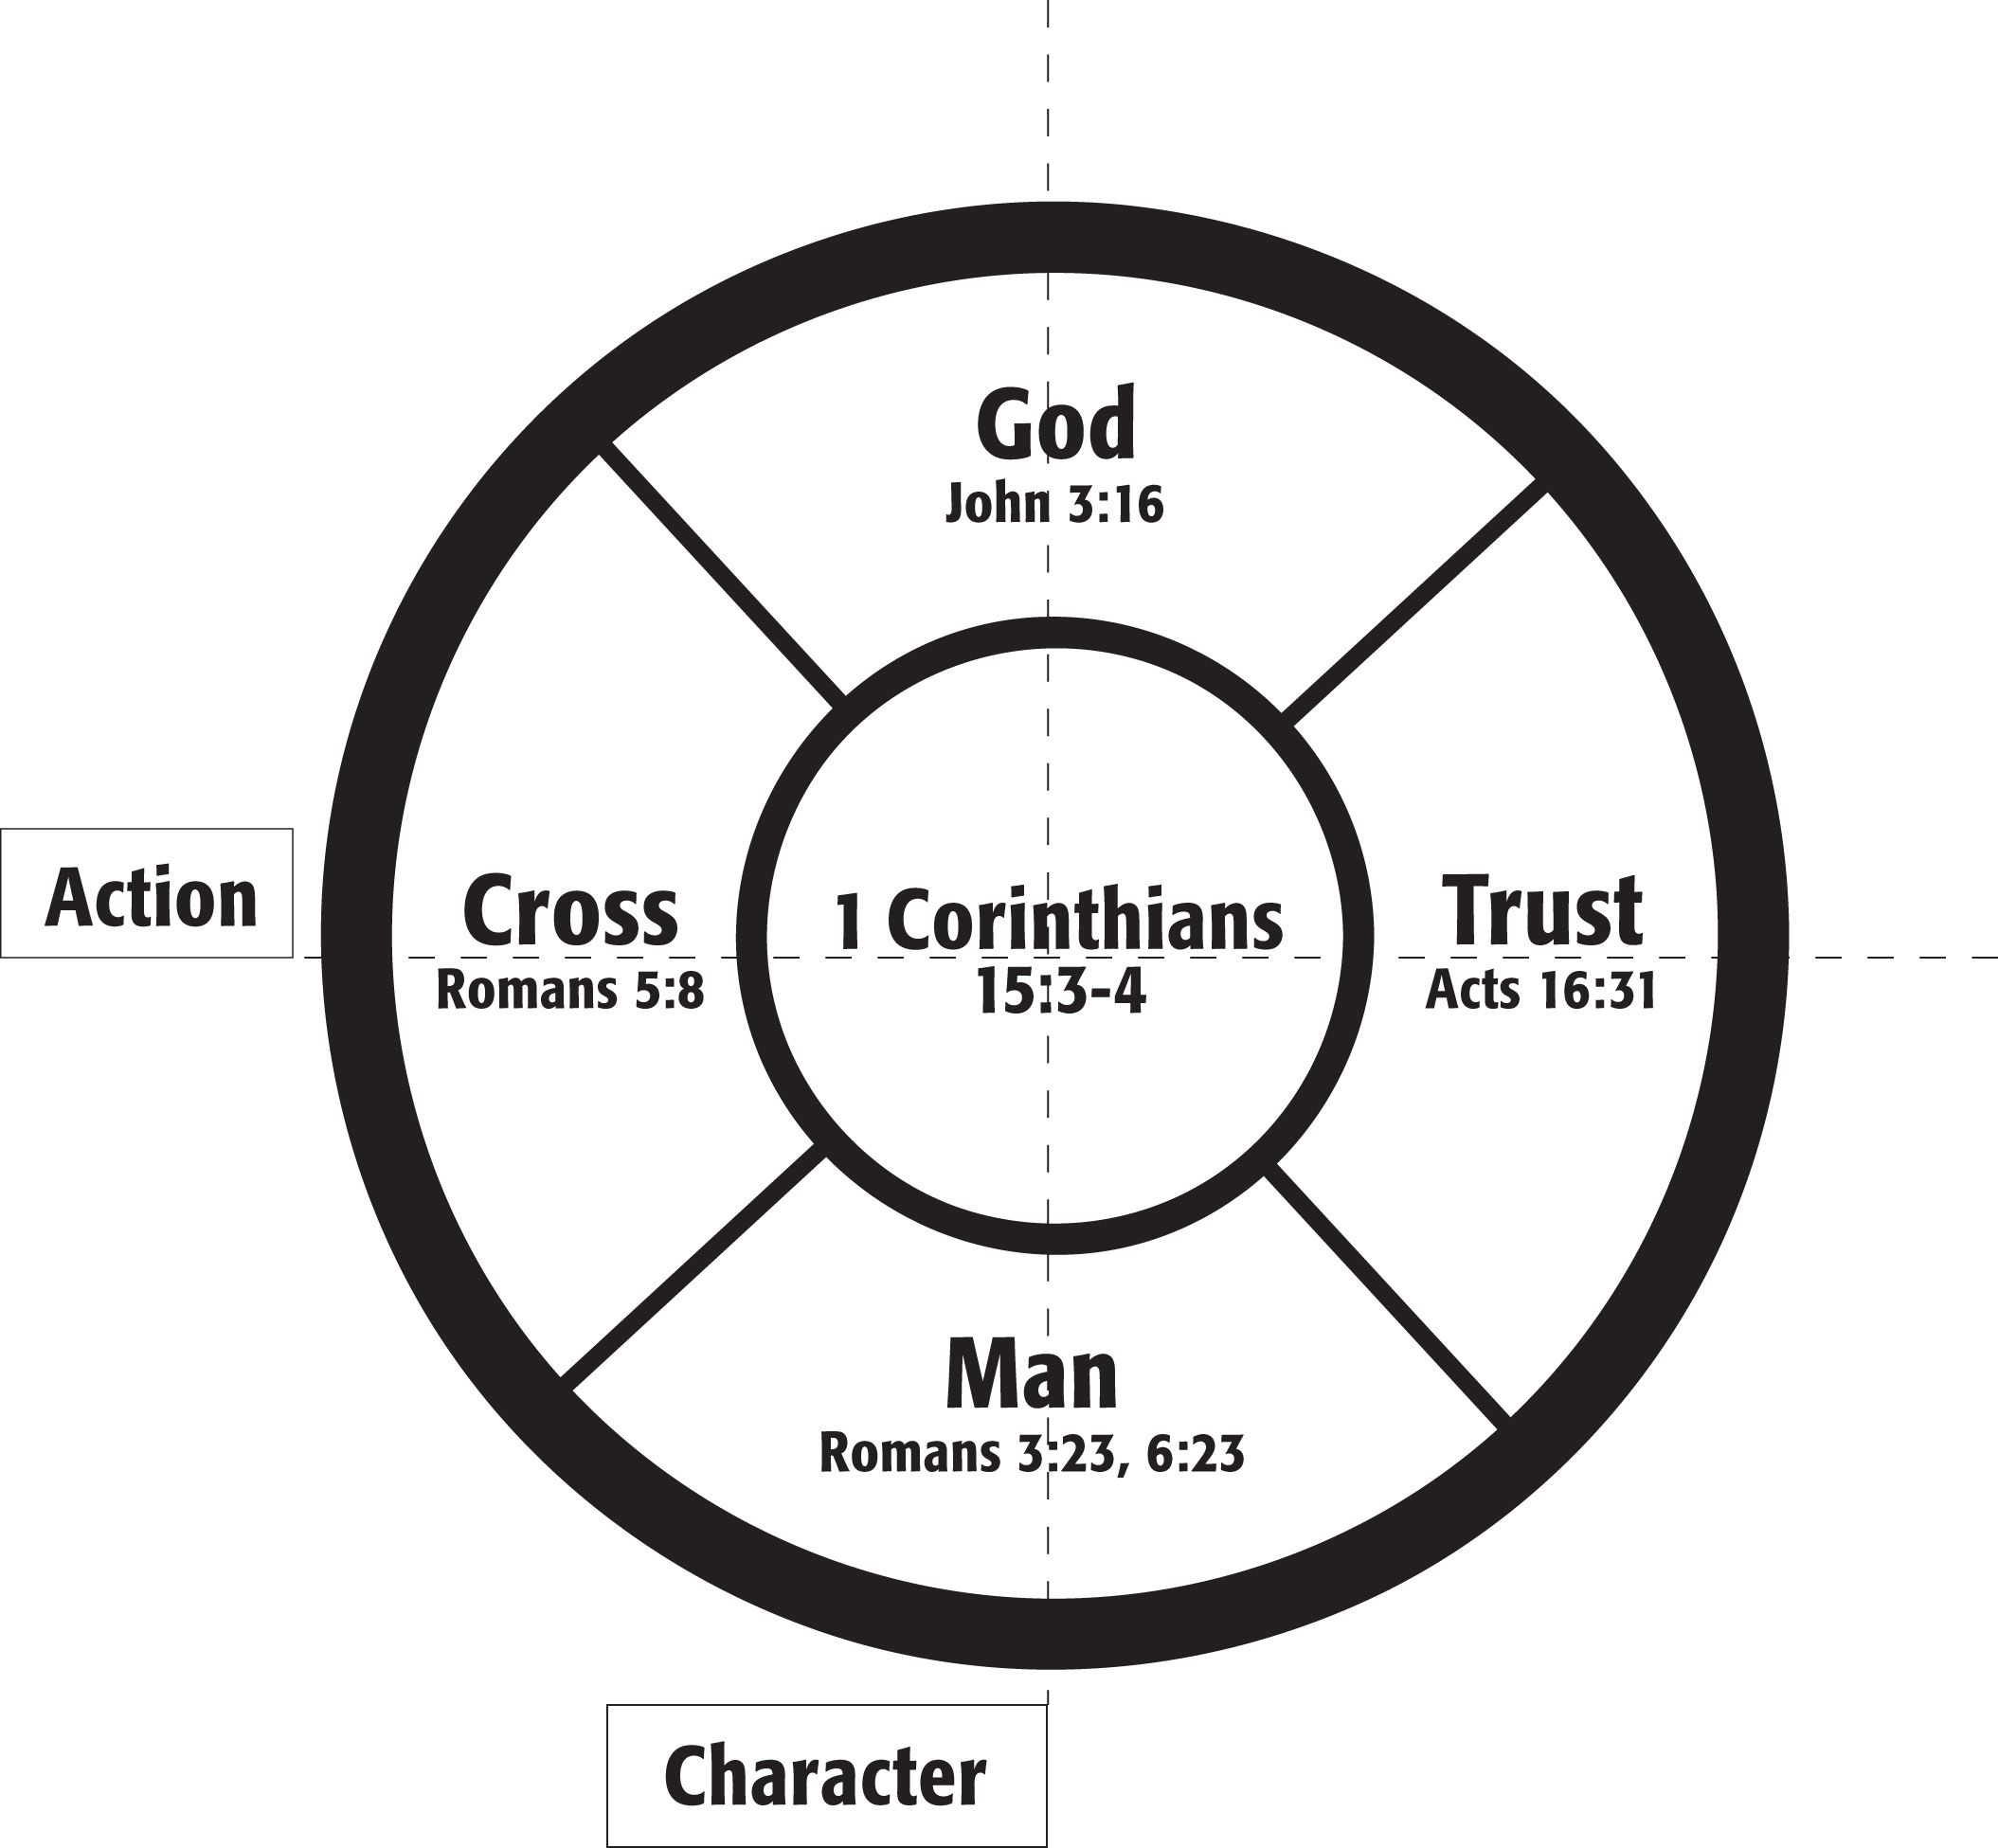 learned about this gospel wheel at AWANA leadership